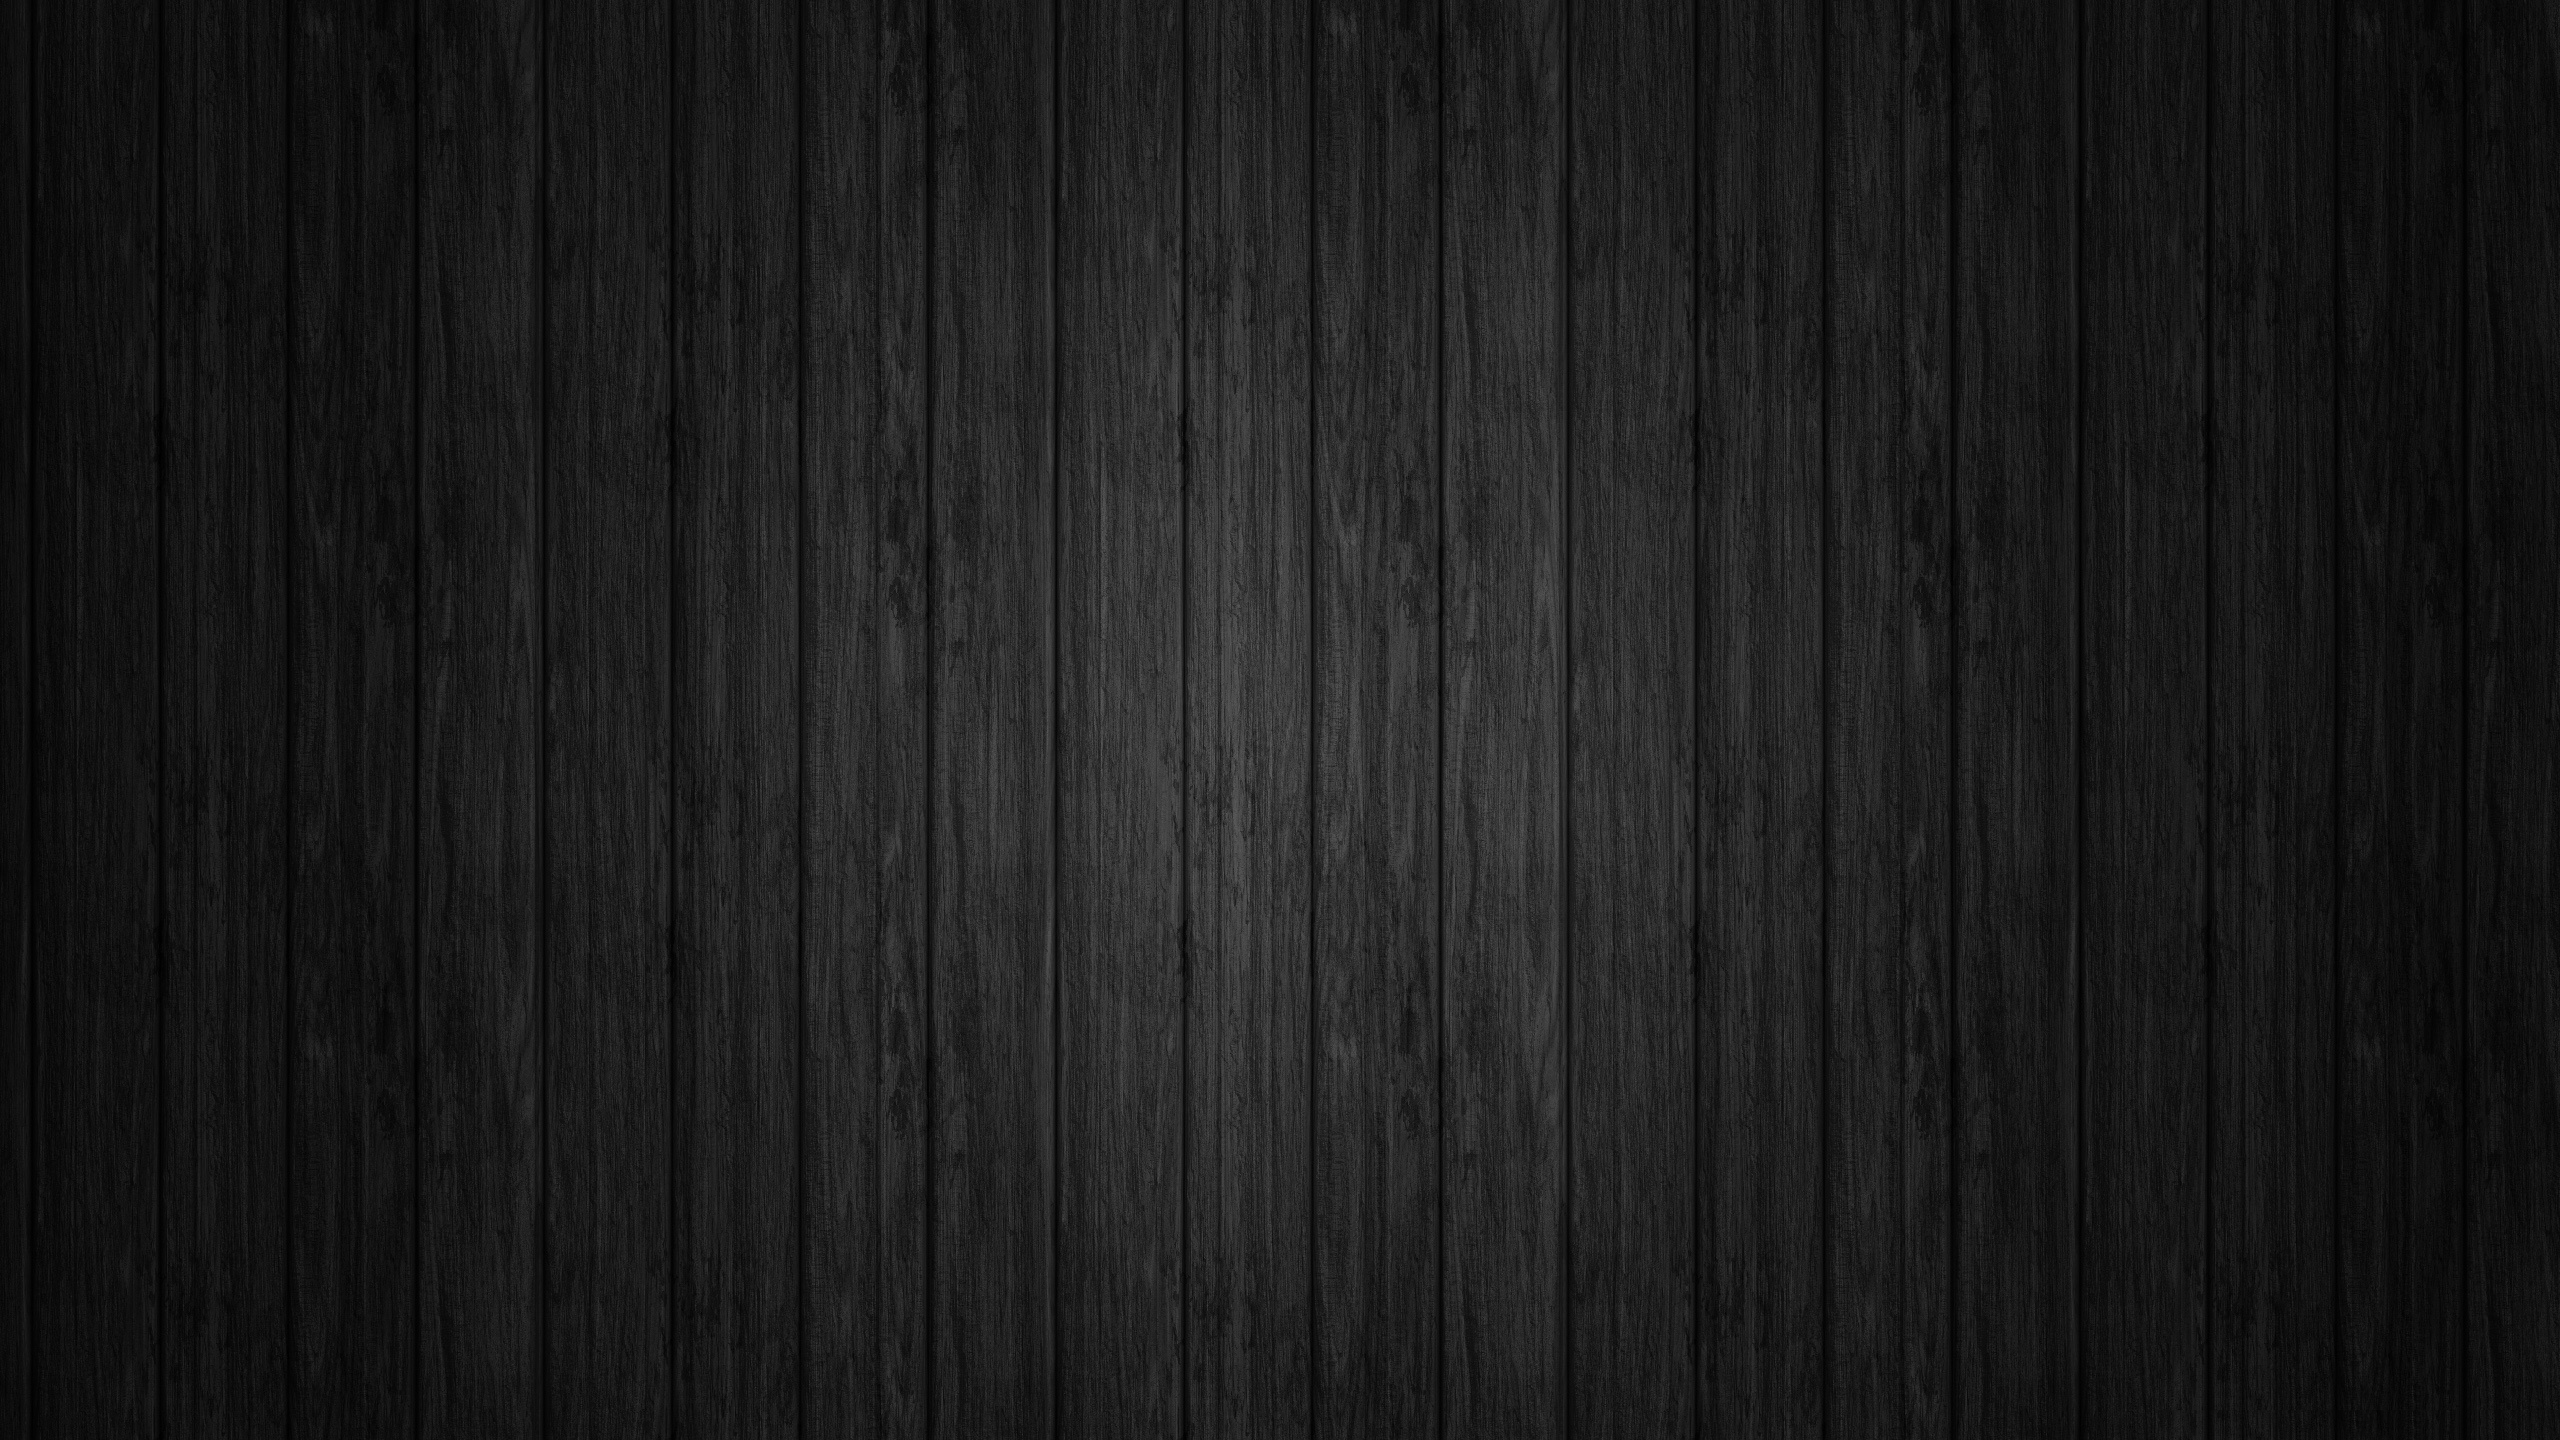 Tumblr static tumblr static black background wood 2560x1440 by starlyz